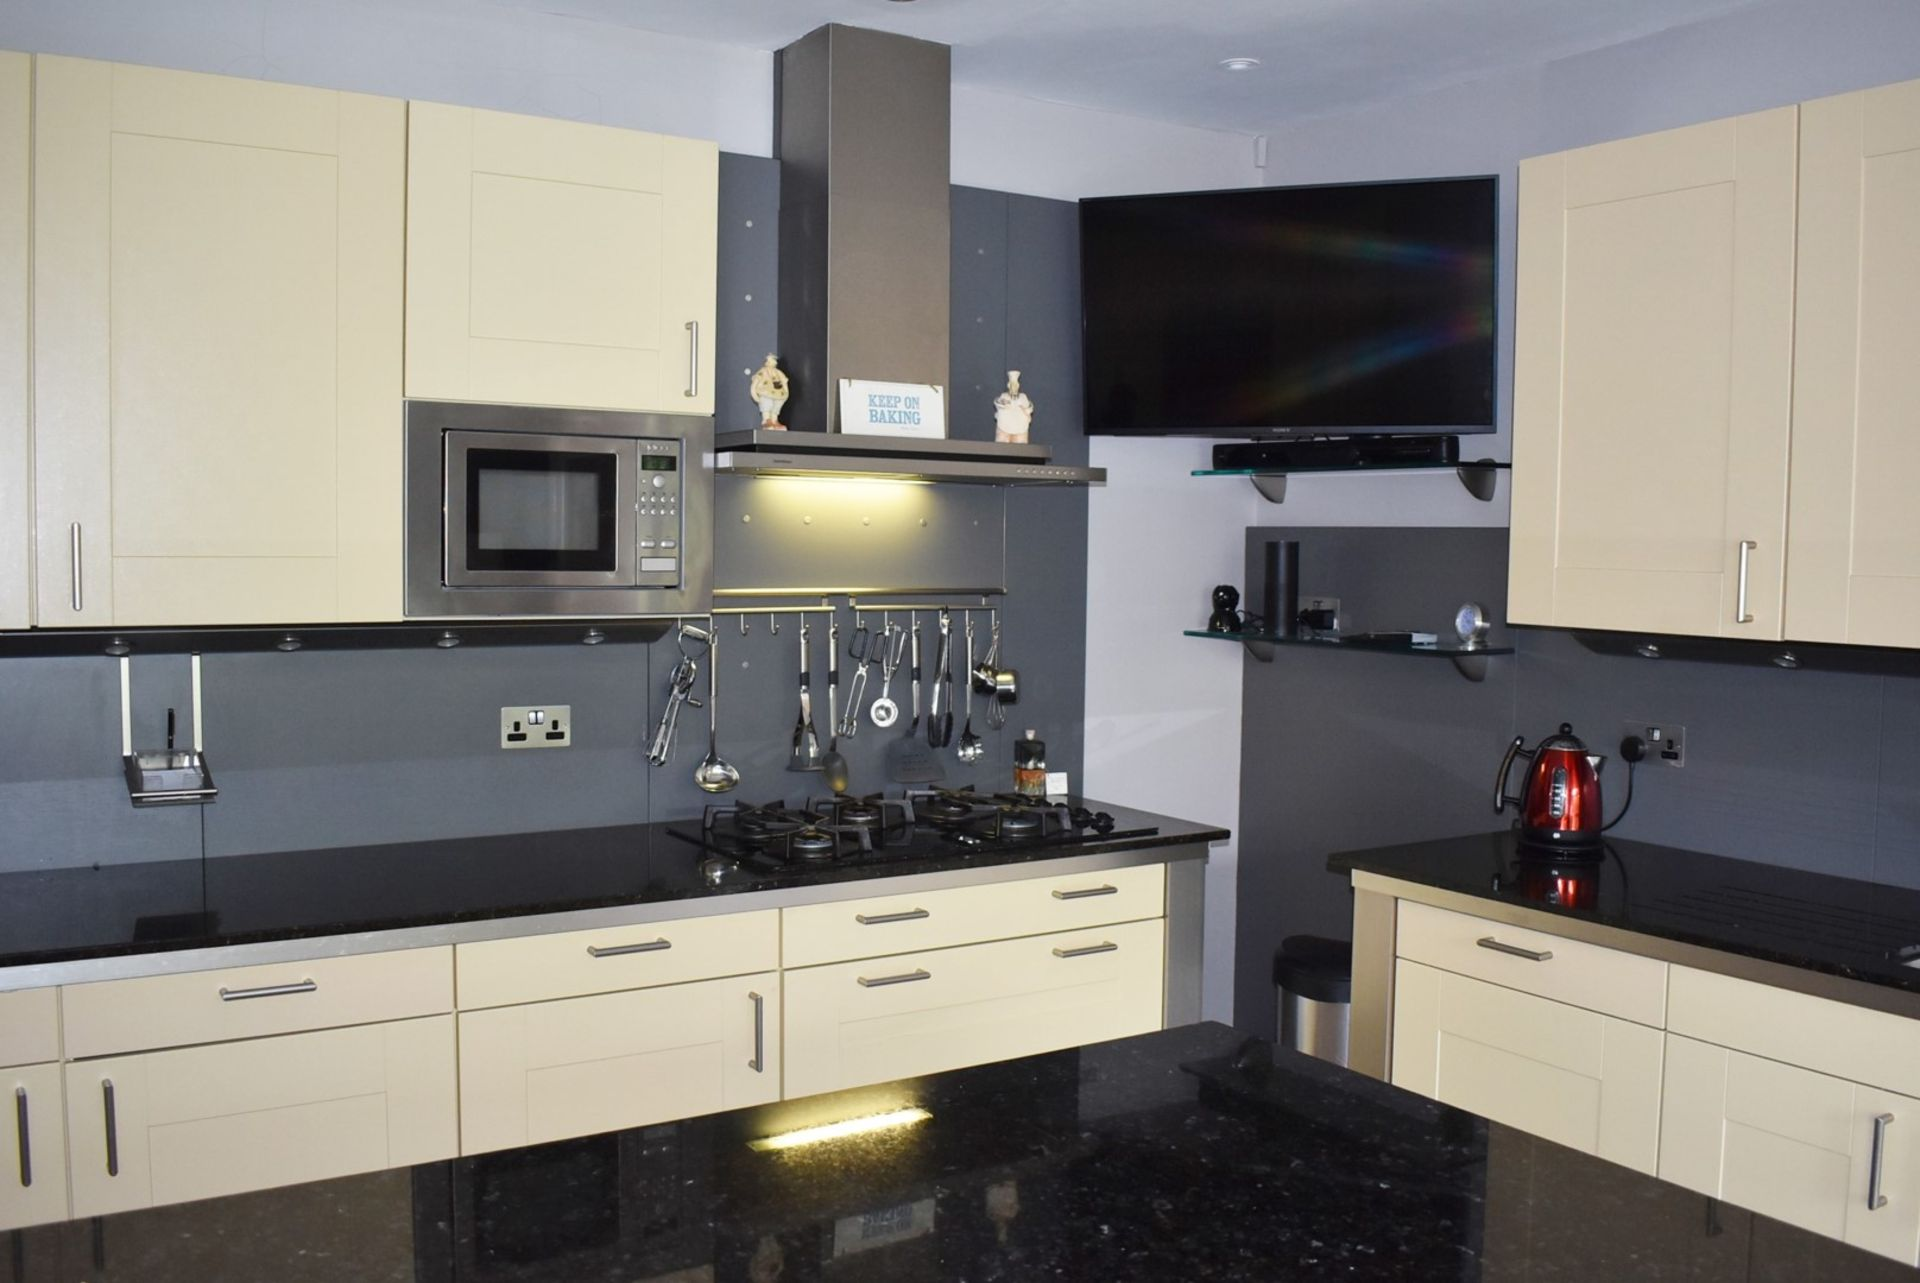 1 x SieMatic Contemporary Fitted Kitchen With Appliances - Features Shaker Style Doors, Central - Image 93 of 96